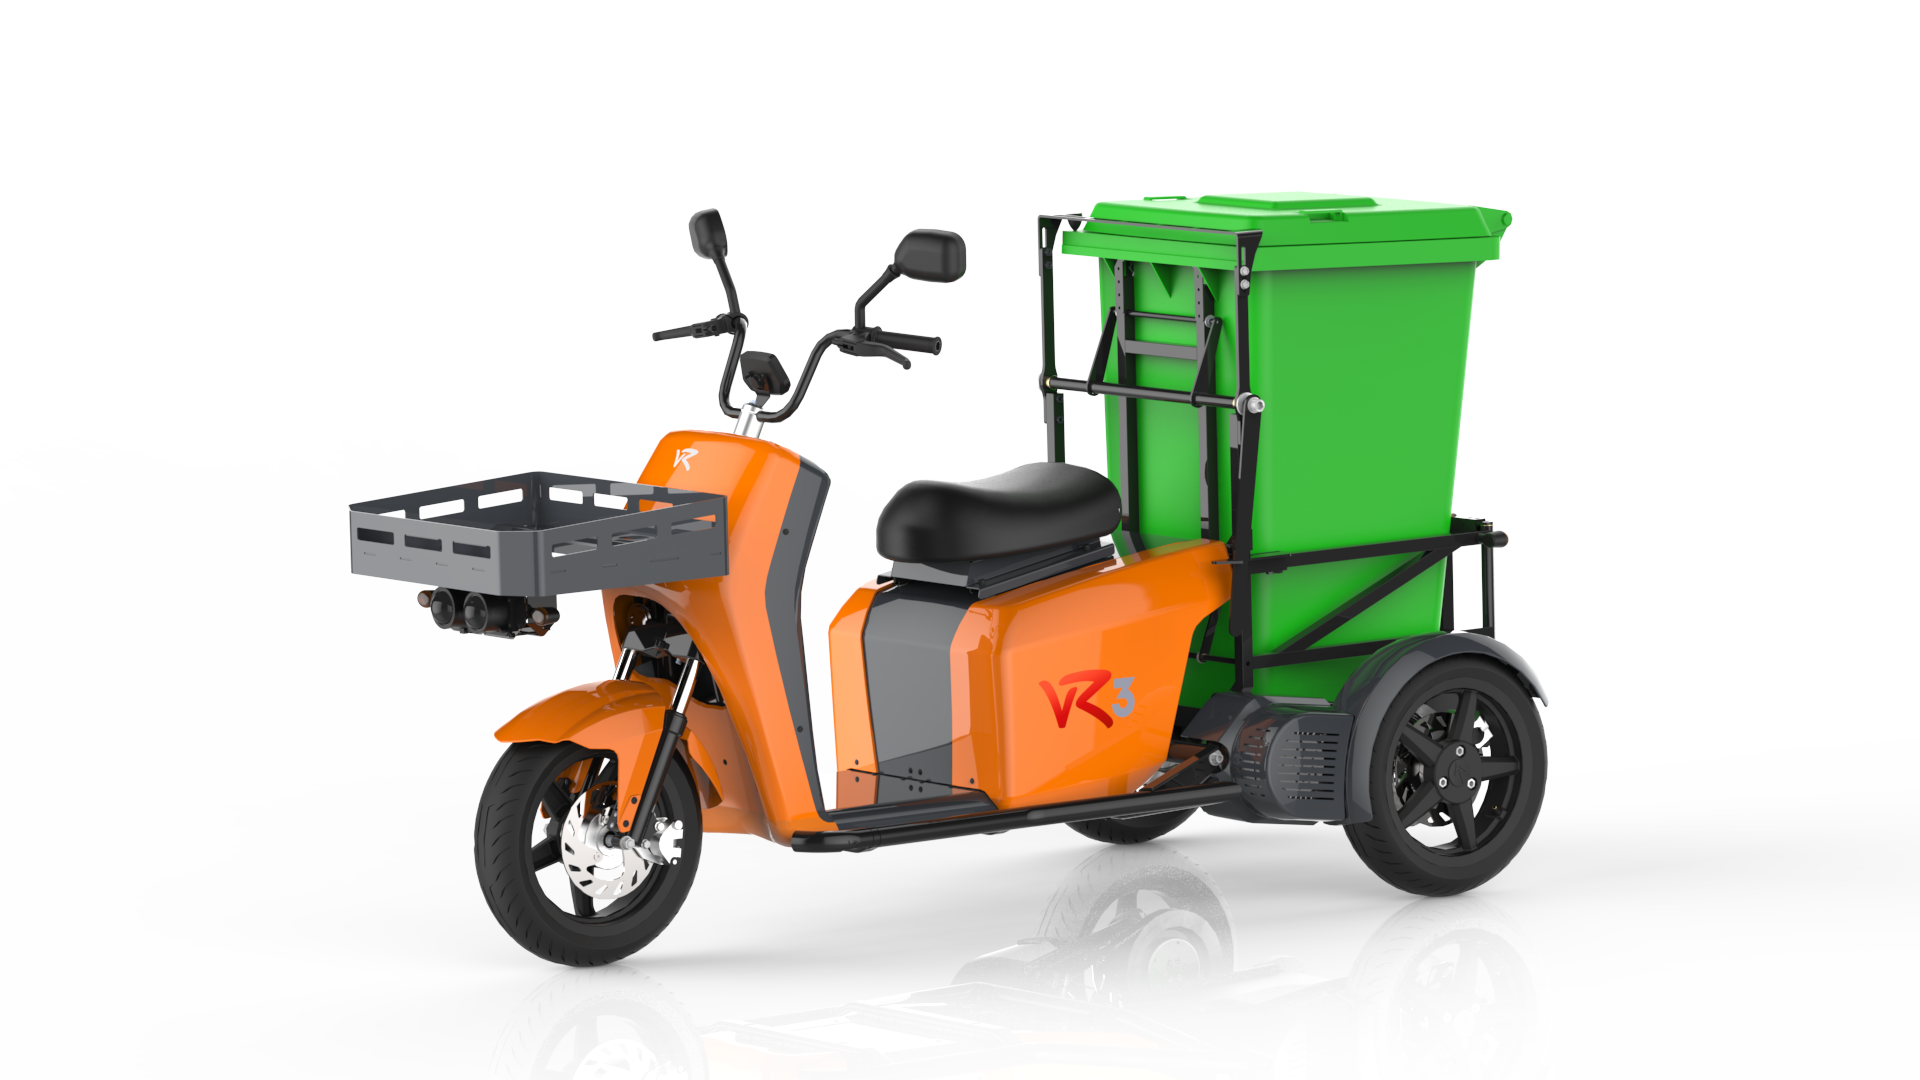 The vR3 electric tricycle as a municipal vehicle with support for foliage container